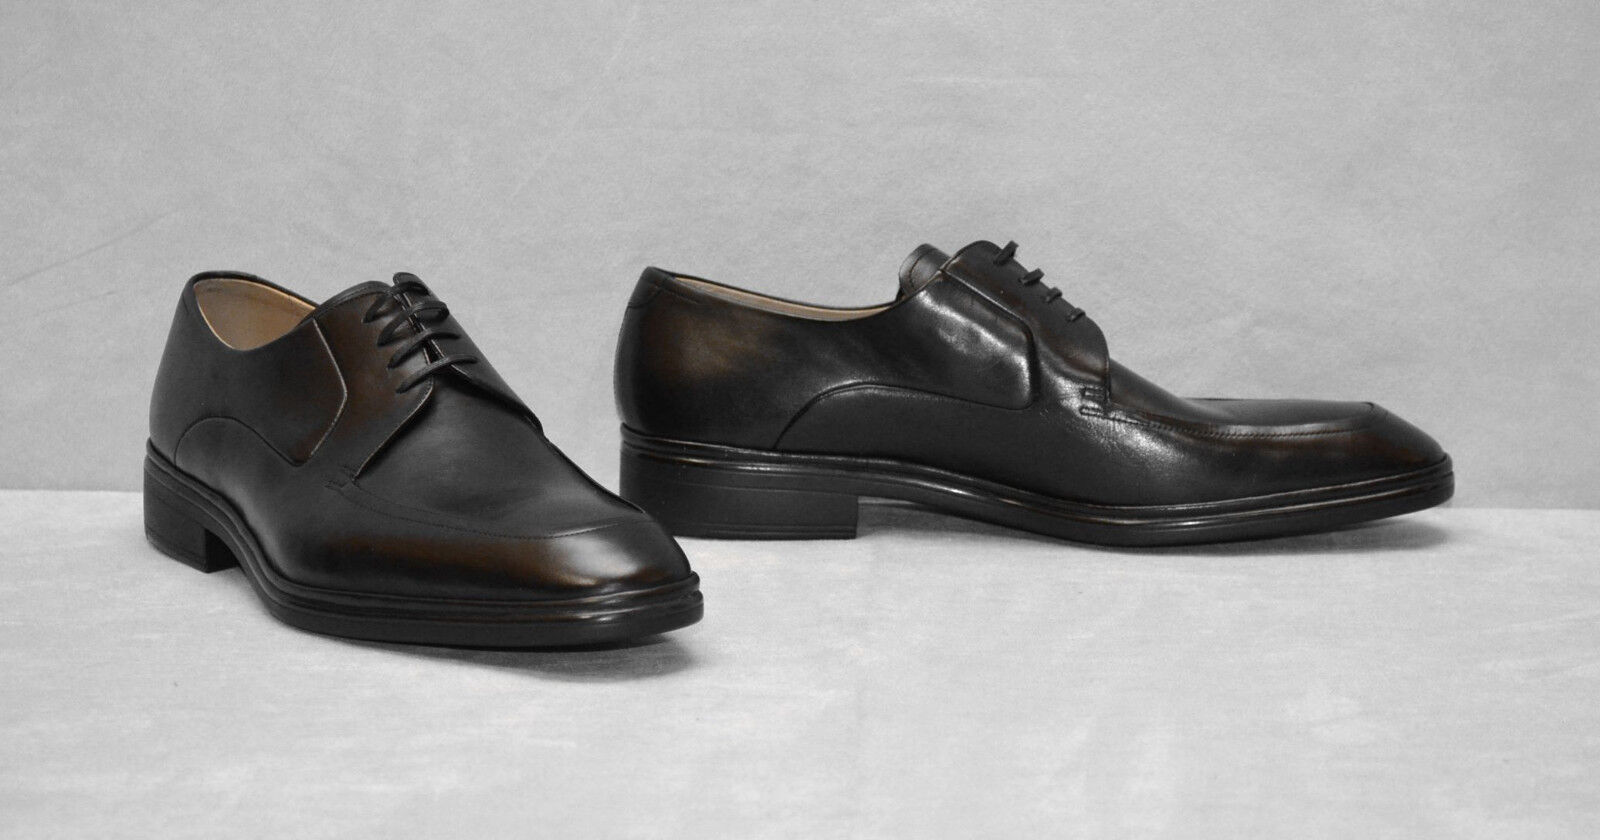 F5 NEW BALLY Newland Black Leather Lace Up Oxfords shoes Size US 11 D  600